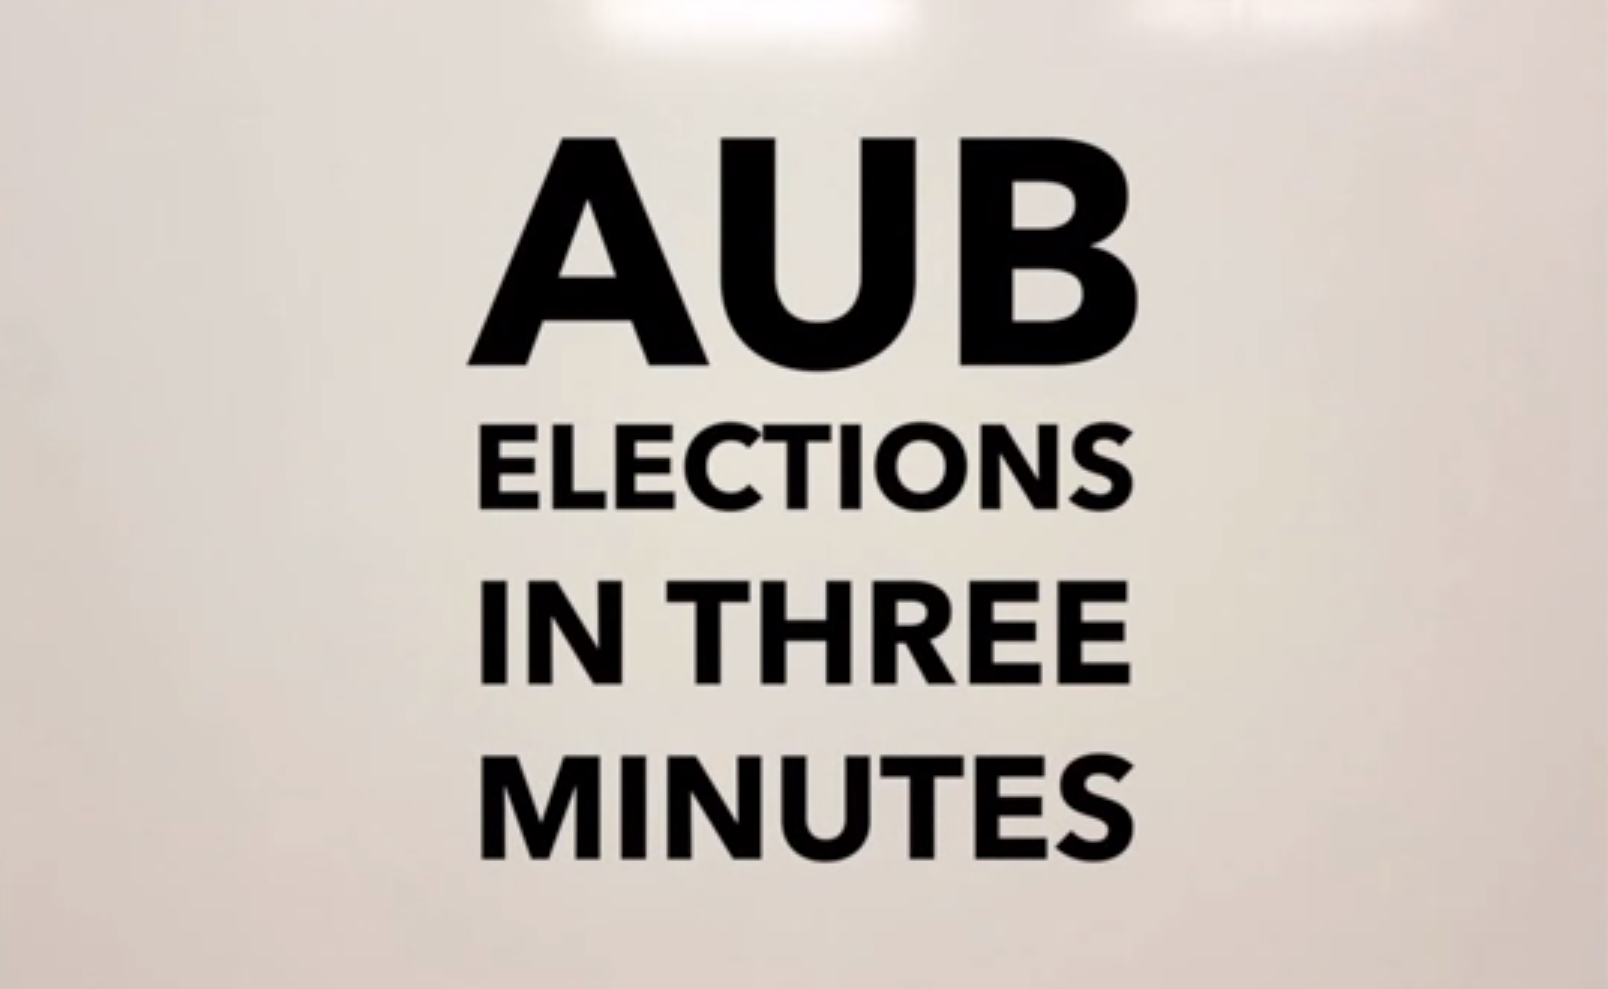 AUB elections in 3 minutes